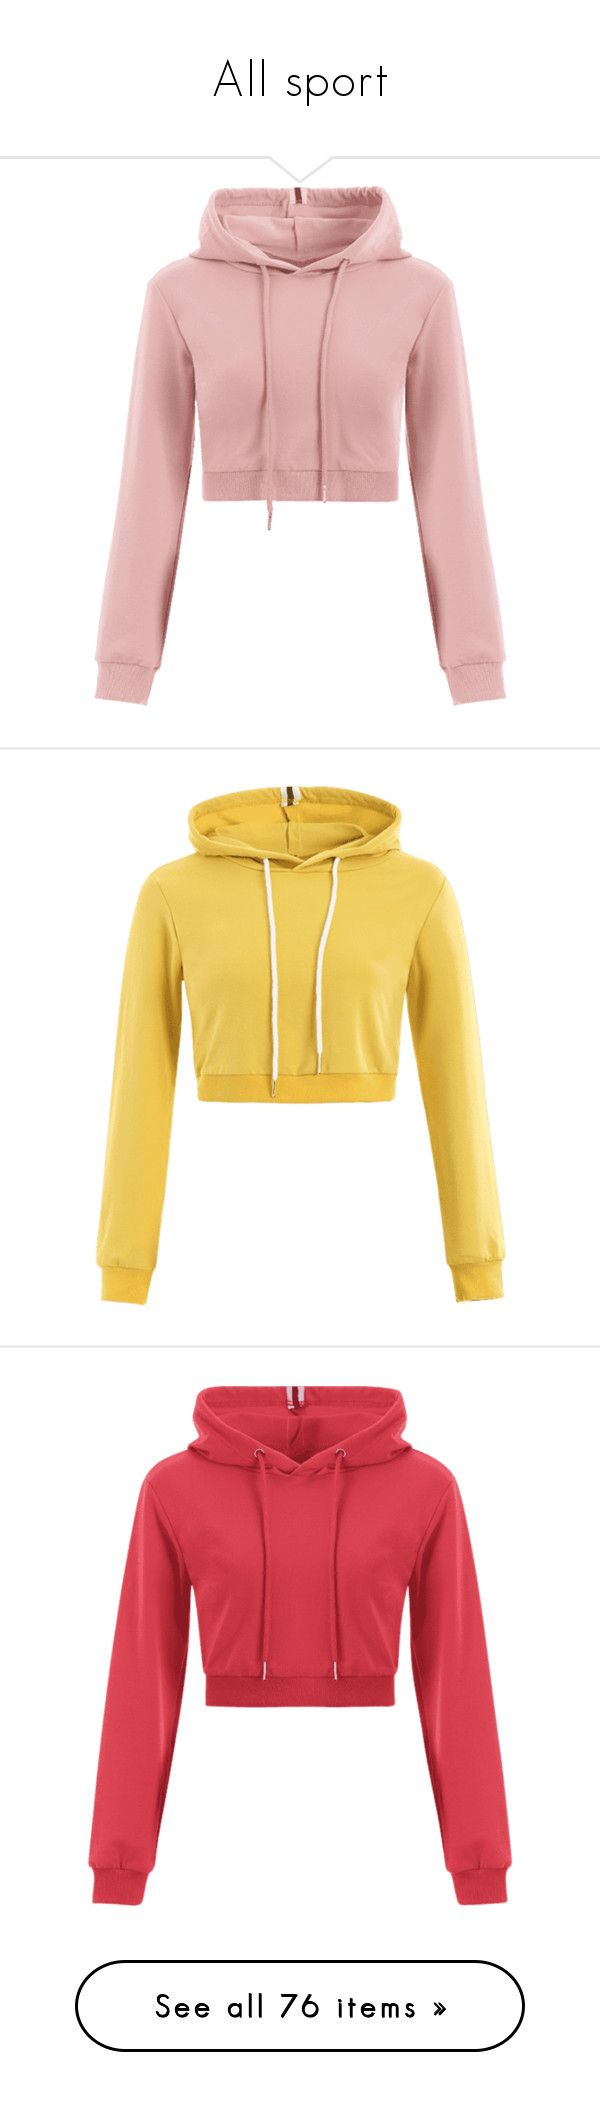 """""""All sport"""" by zaful ❤ liked on Polyvore featuring tops, hoodies, sports hoodies, sports crop tops, drawstring hoodie, cropped hoodie, cropped hooded sweatshirt, red top, cropped hoodies and red hooded sweatshirt"""